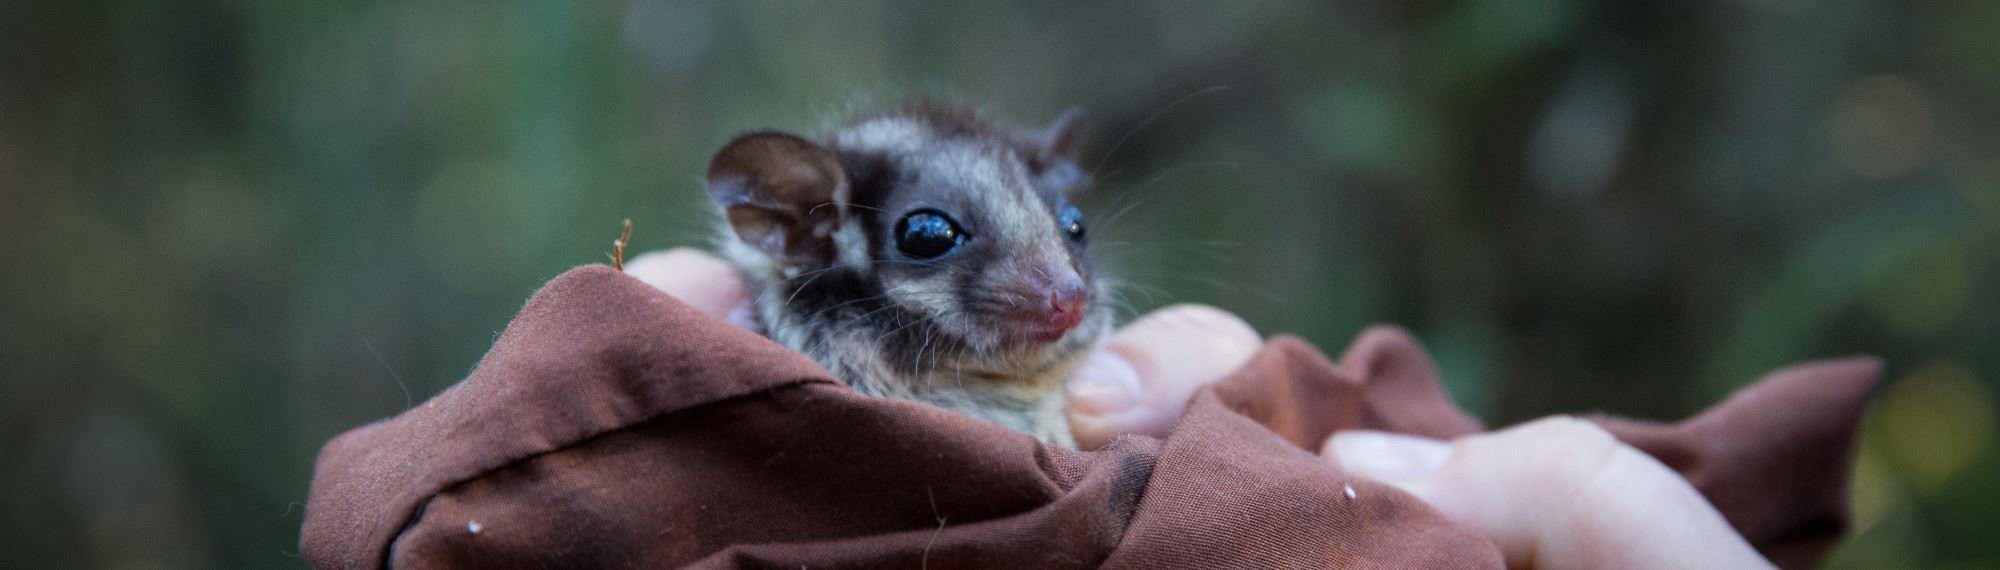 Close up view of the face of a Leadbeater Possum wrapped in blanket. Big eyes and fine facial details can be seen as it looks to the right of the camera.